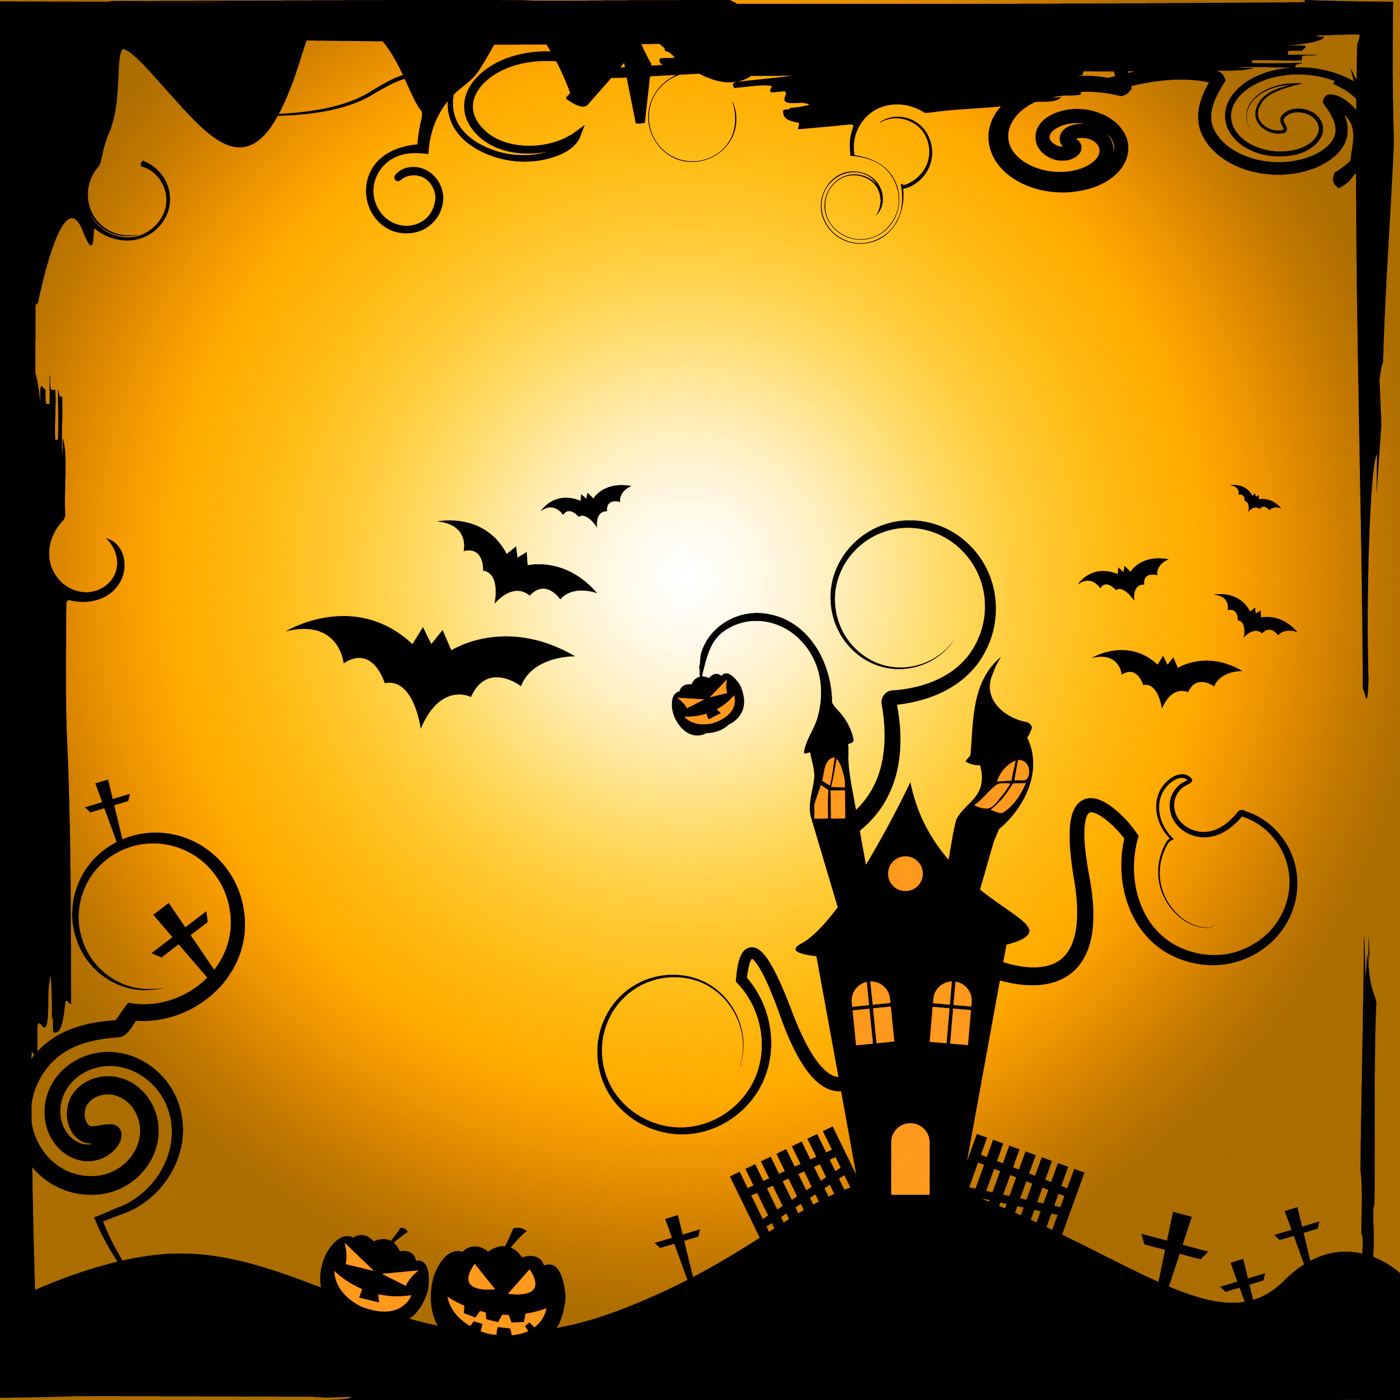 Haunted House Shows Trick Or Treat And Astronomy, Astronomy, Lunar, Scary, Planet, HQ Photo